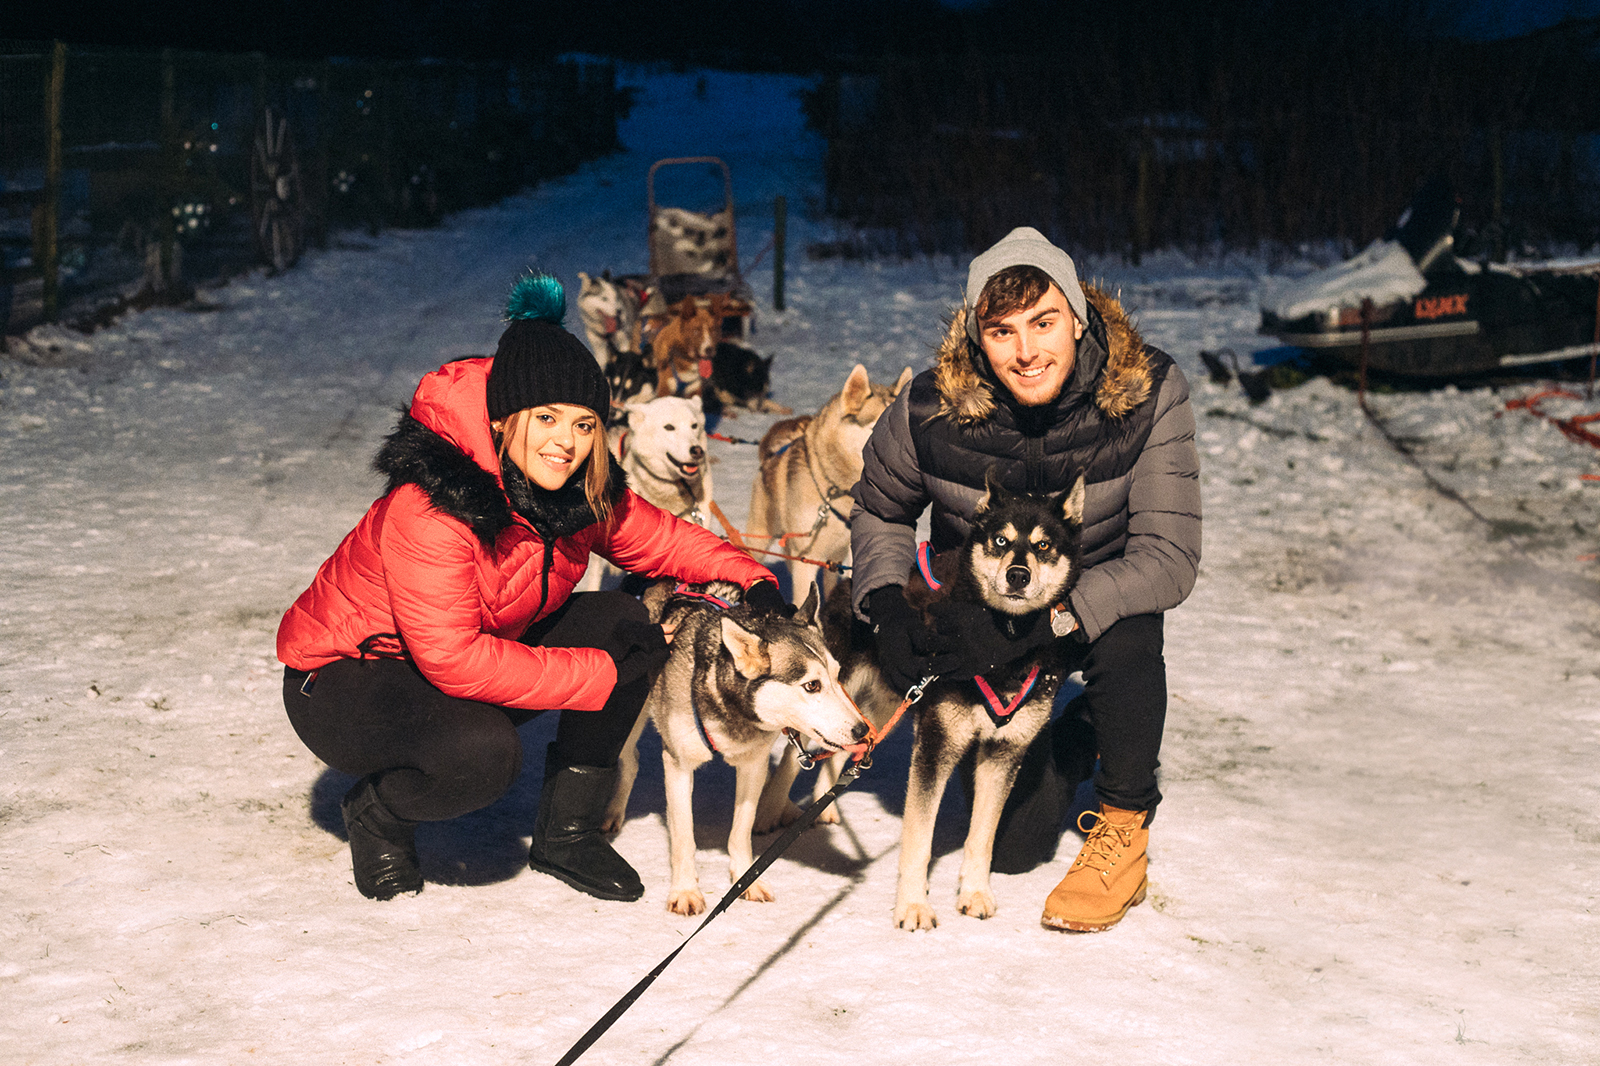 Huskypark dog sledding in Estonia